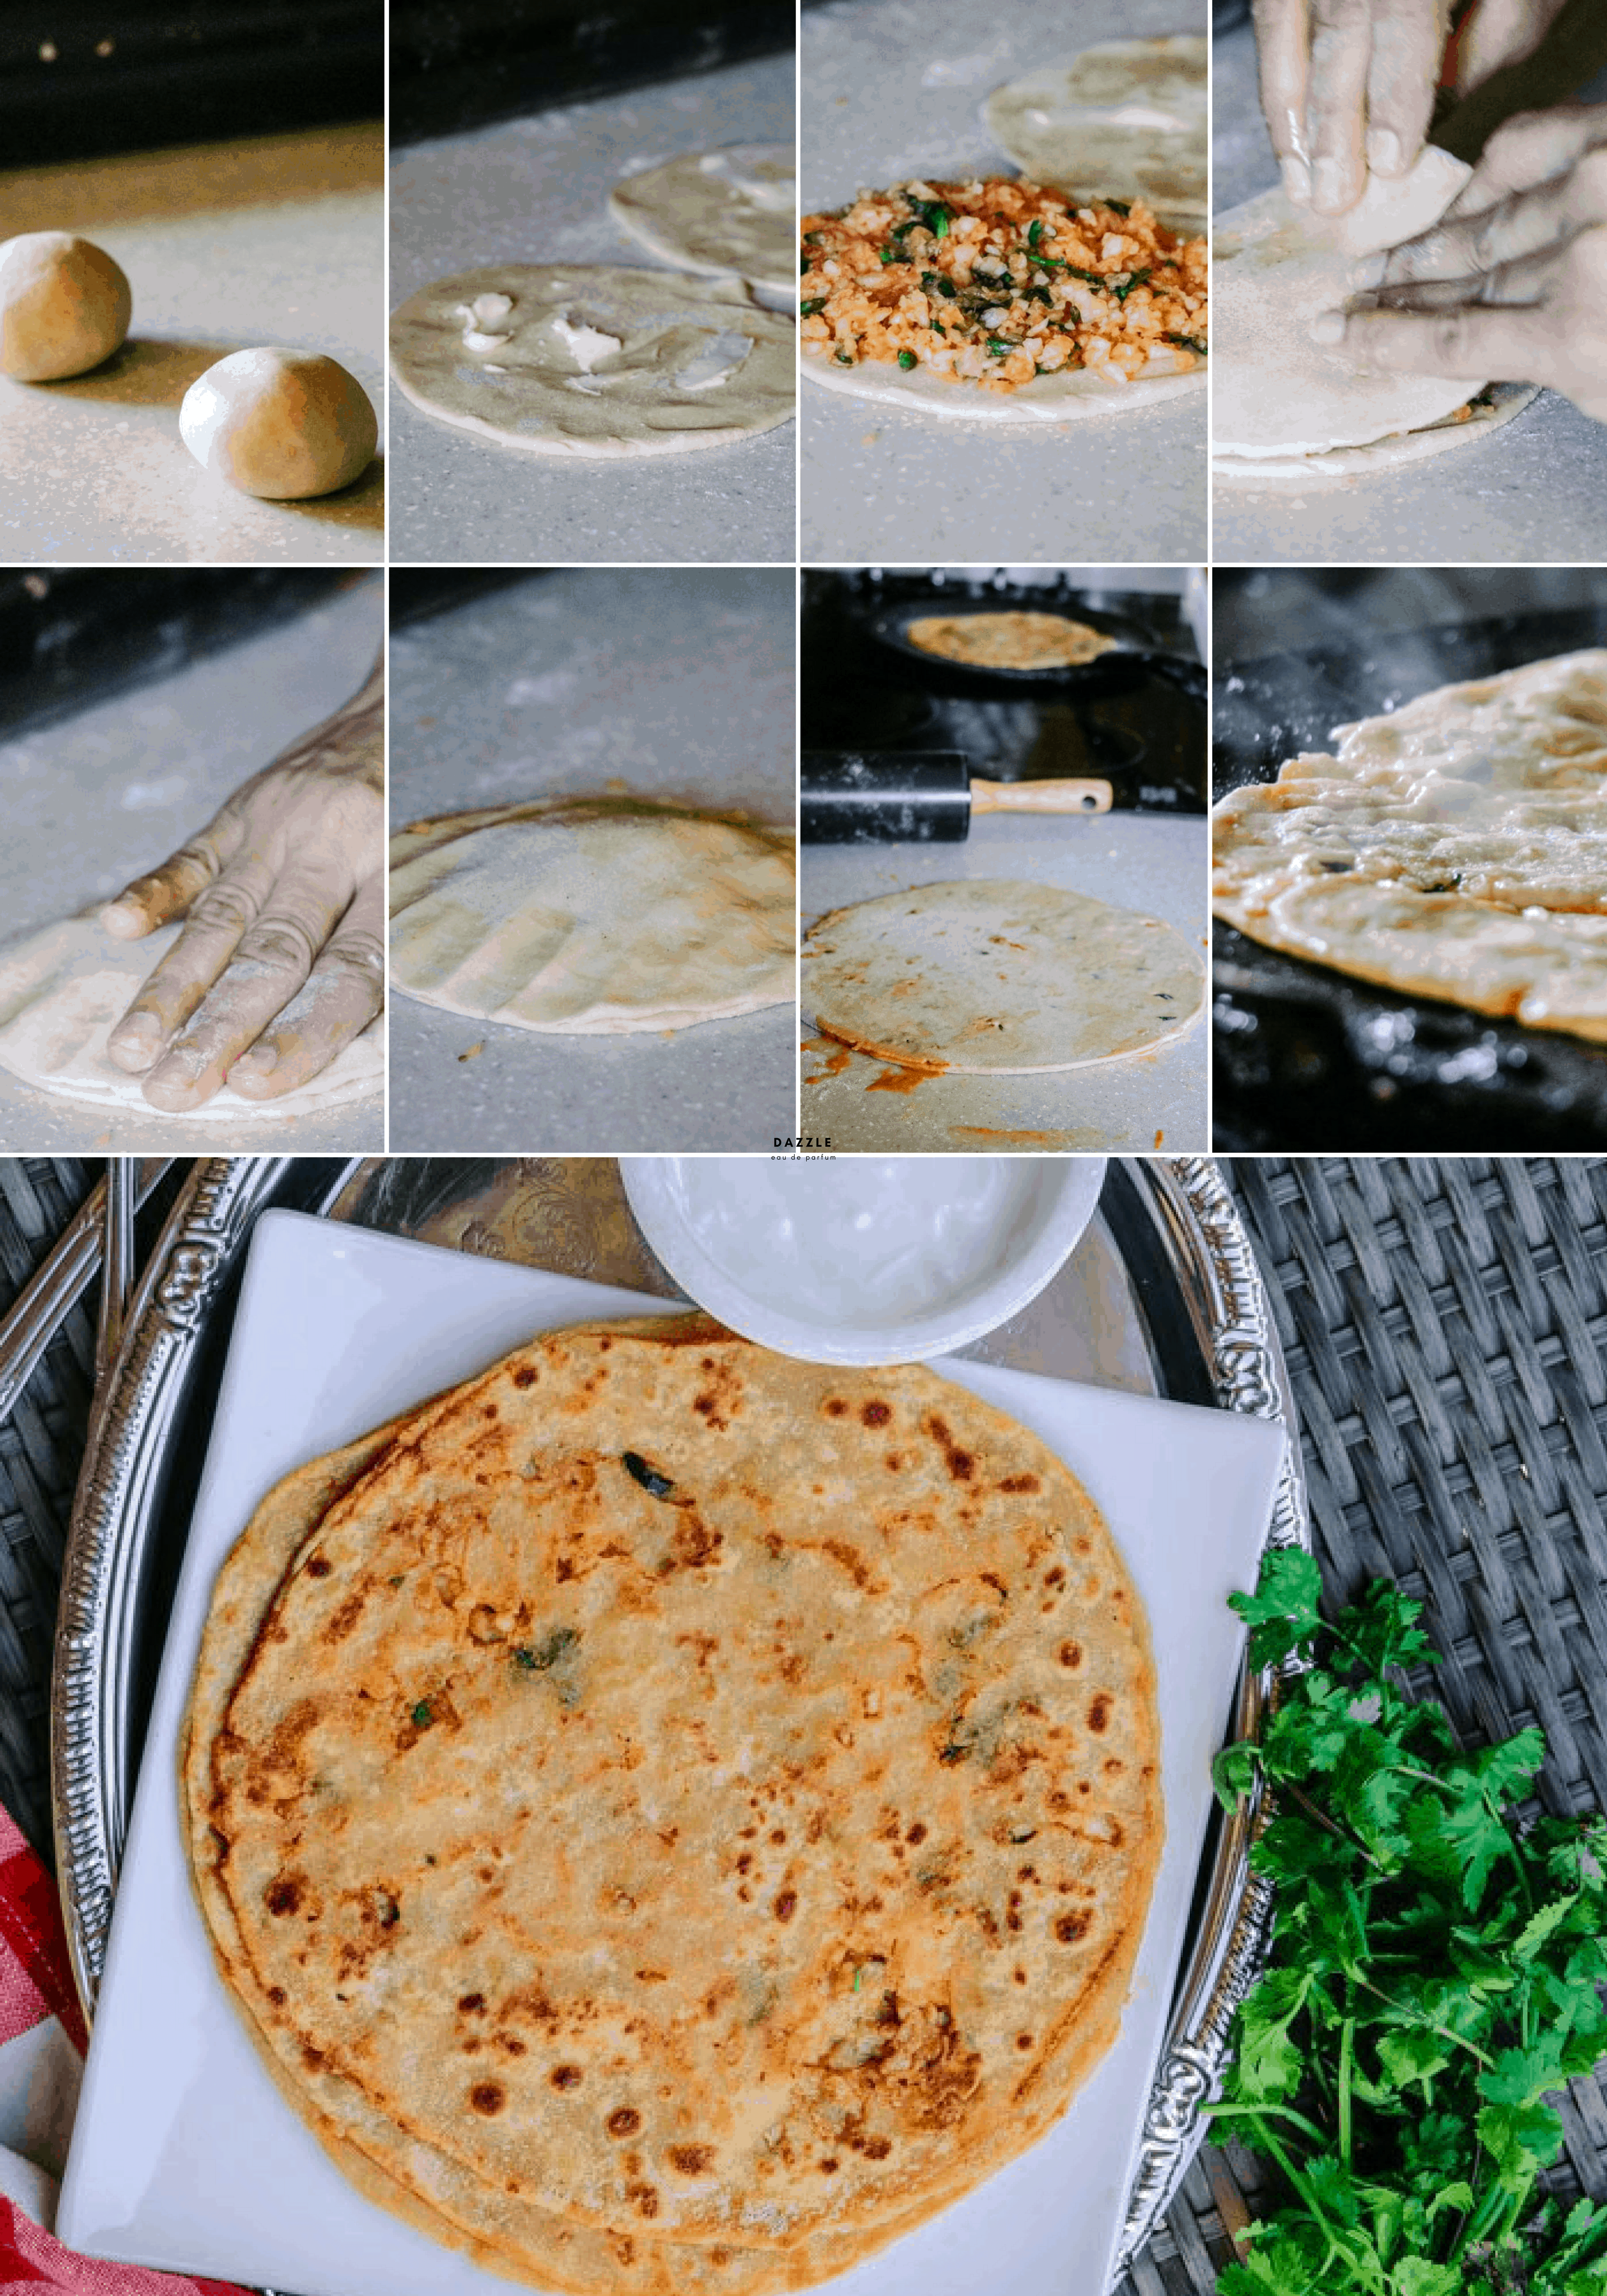 Mooli Waala Paratha - Daikon-Stuffed Flatbread. These traditional Mooli Wala Partha (daikon stuffed flatbread) is a popular breakfast recipe in Pakistan and India. This recipe has a 4-ingredient filling and includes step-by-step photos and simple directions!